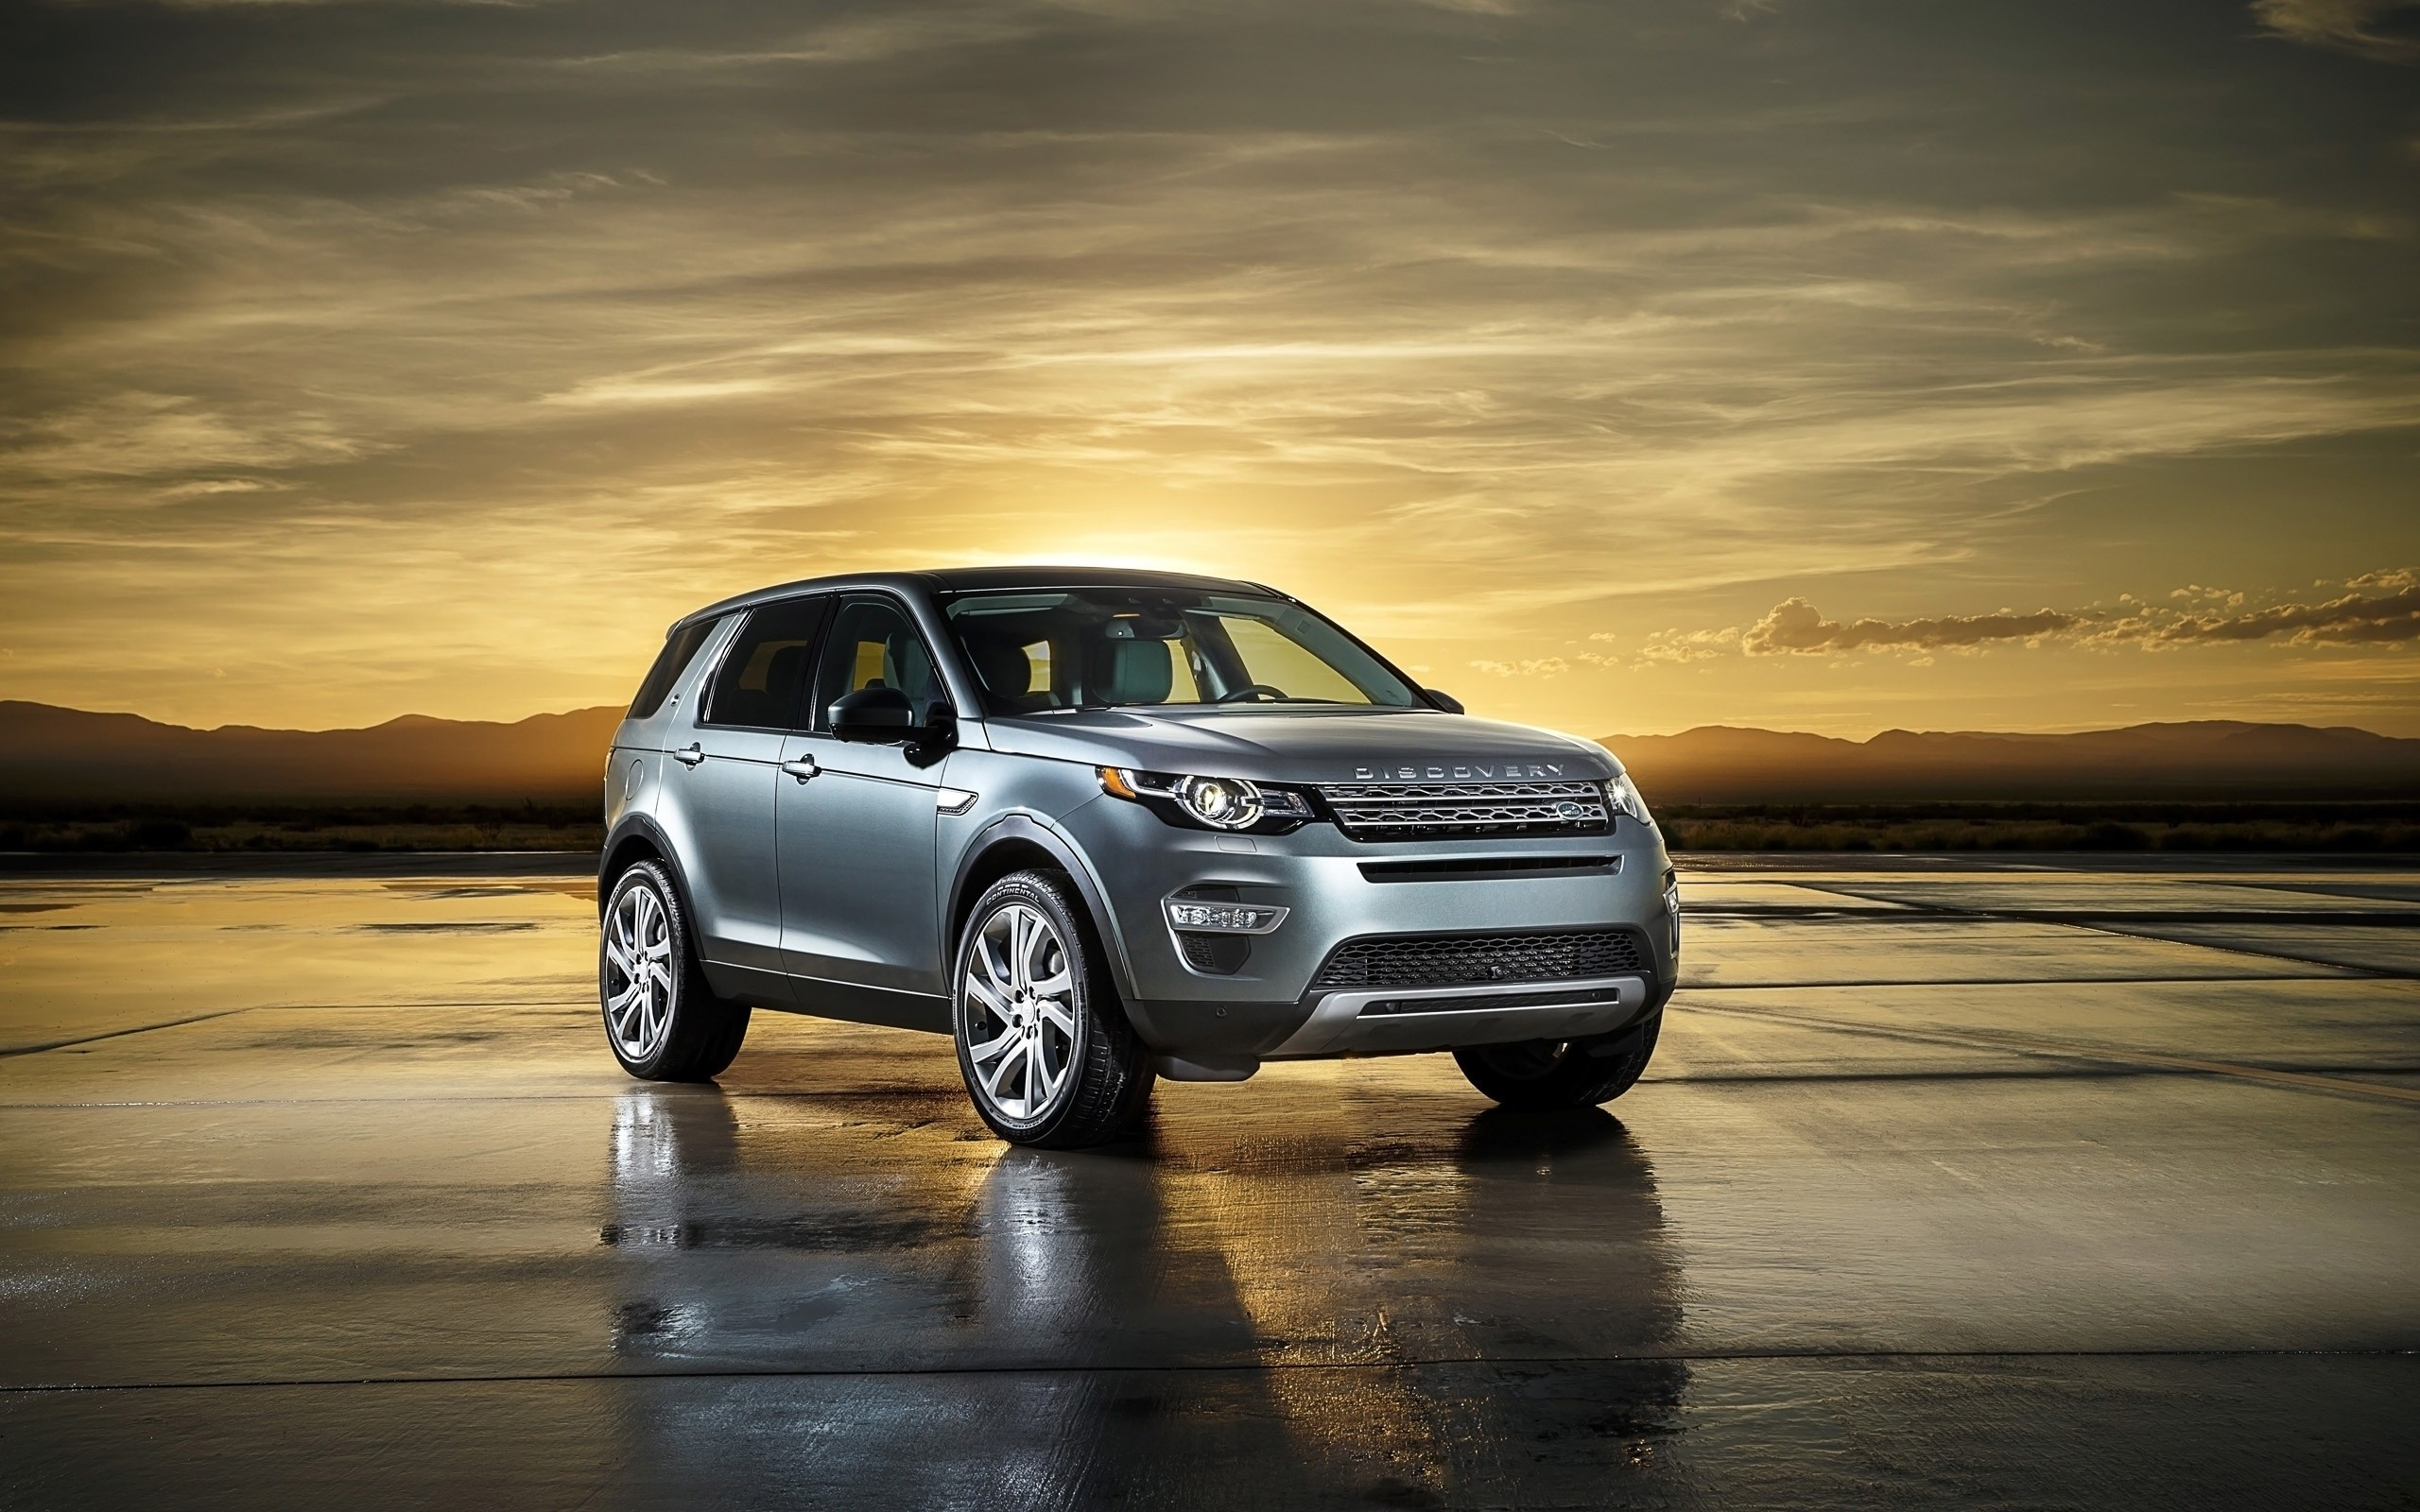 2015 Land Rover Discovery Sport Wide